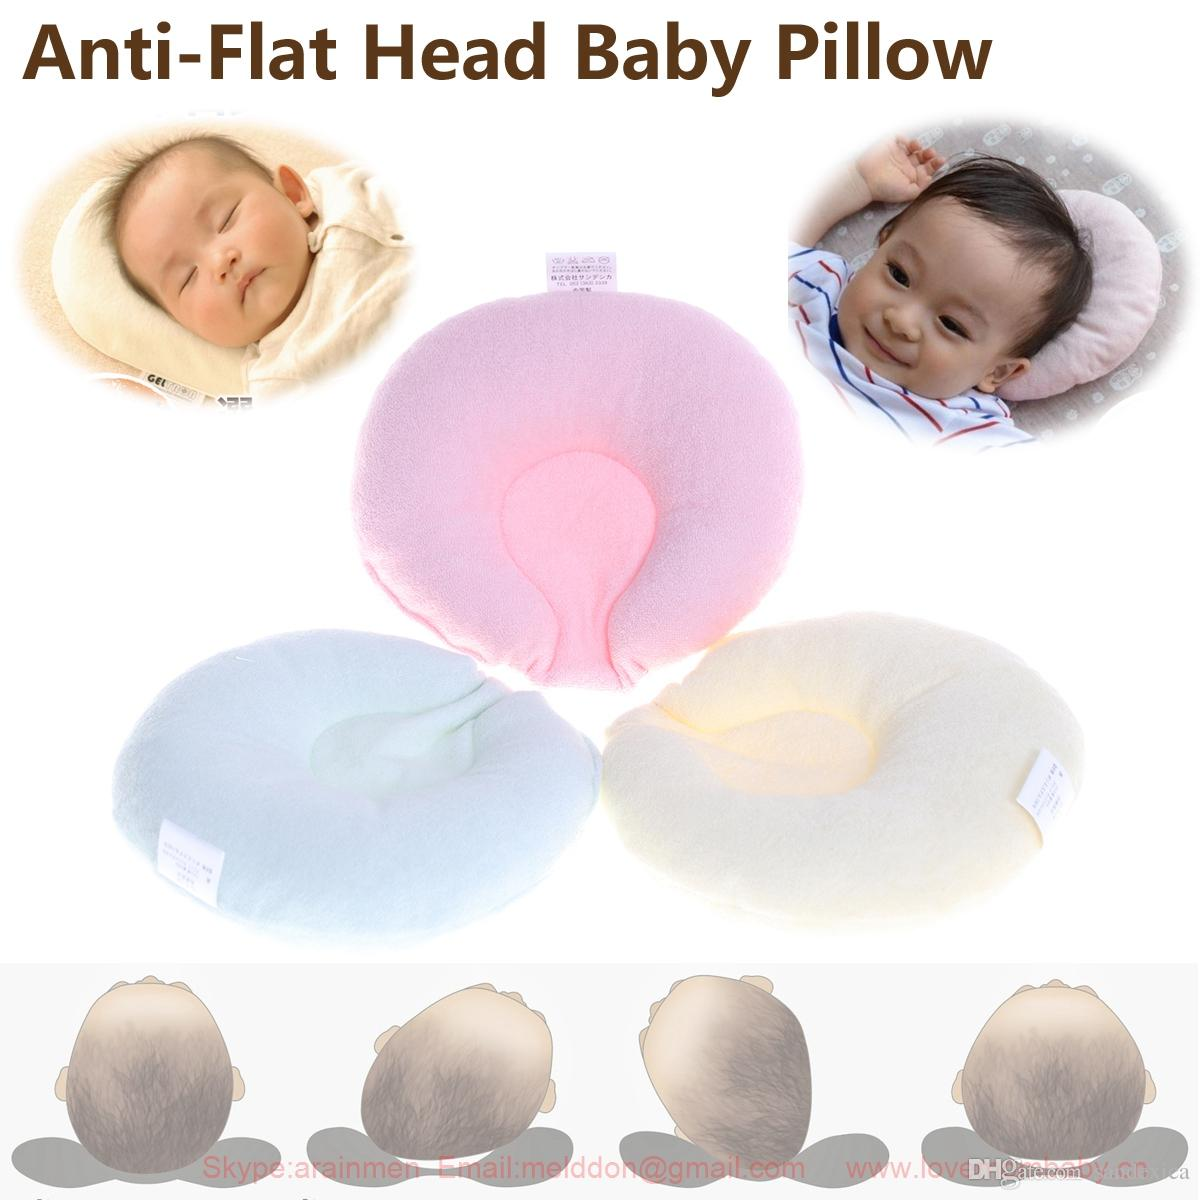 sandexica newborn infant baby pillow support cushion anti flat head soft cotton toddler blankets. Black Bedroom Furniture Sets. Home Design Ideas